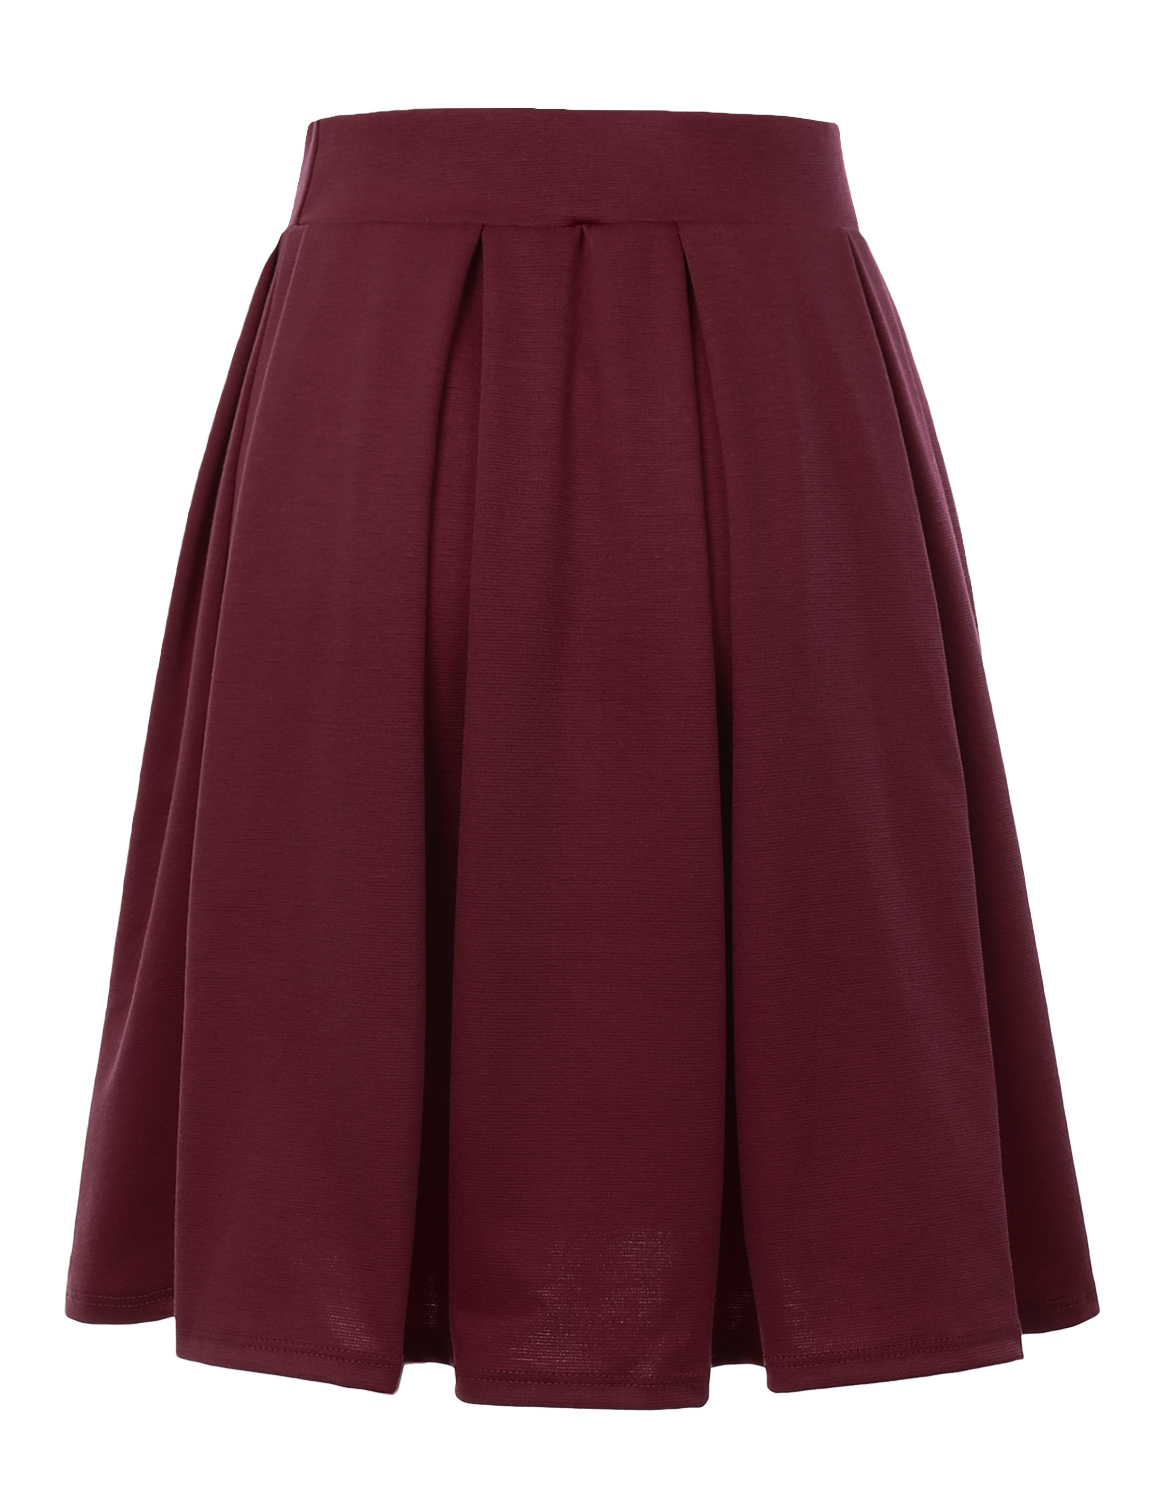 Doublju-Elastic-Waist-Flare-Pleated-Skater-Midi-Skirt-for-Women-with-Plus-Size thumbnail 24